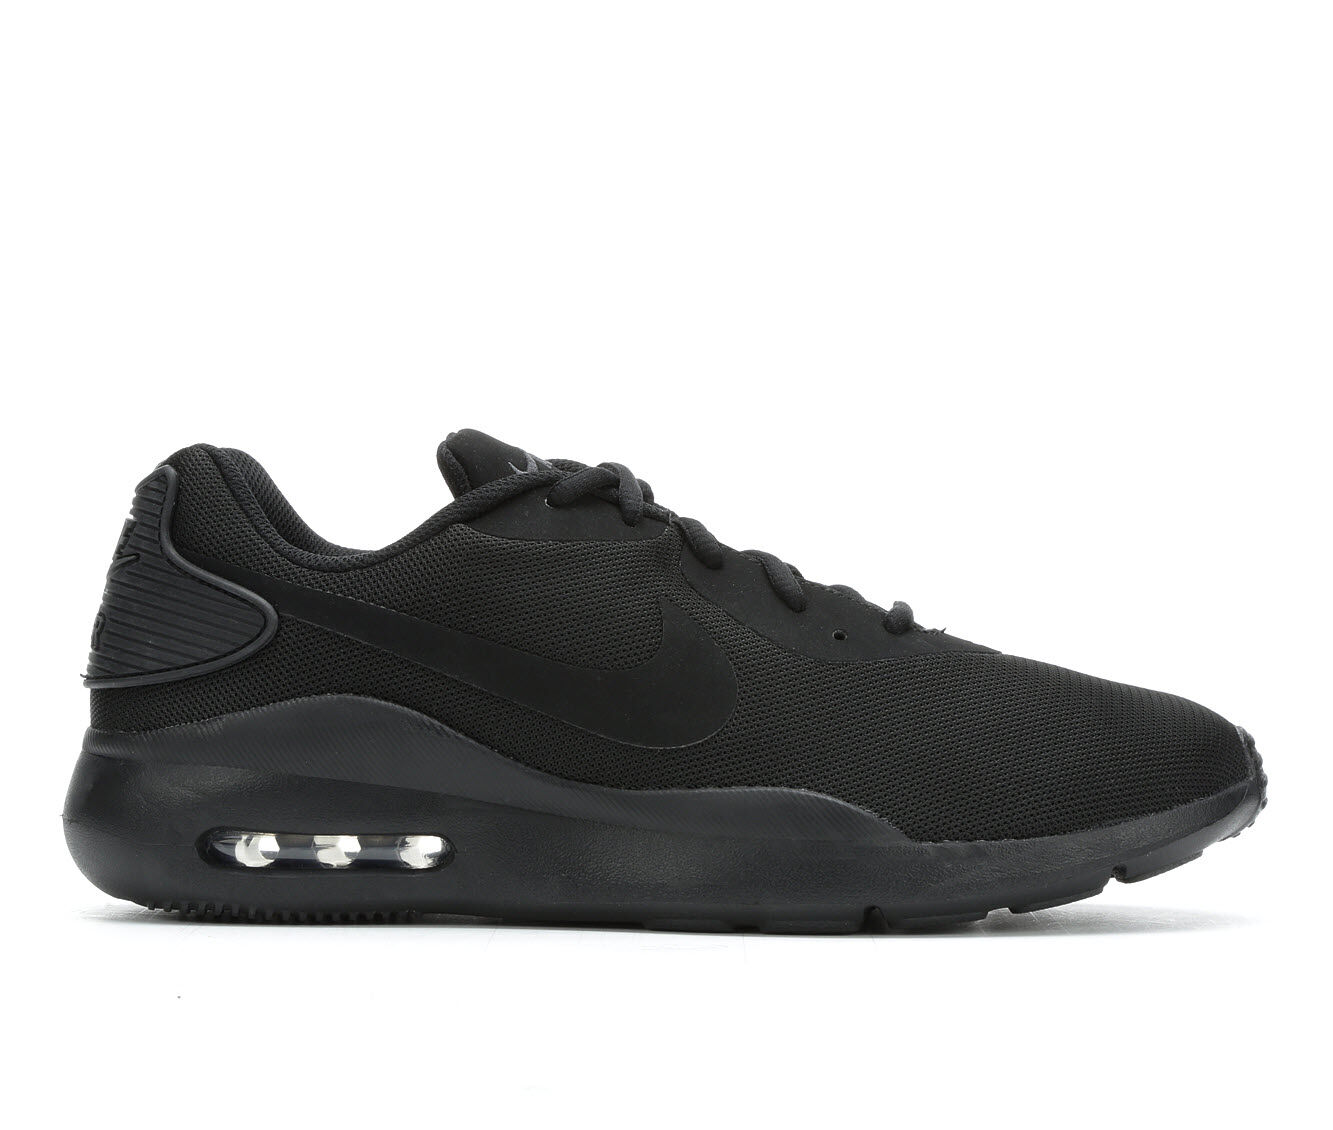 Quite Brilliant Men's Nike Air Max Oketo Sneakers Blk/Blk 006